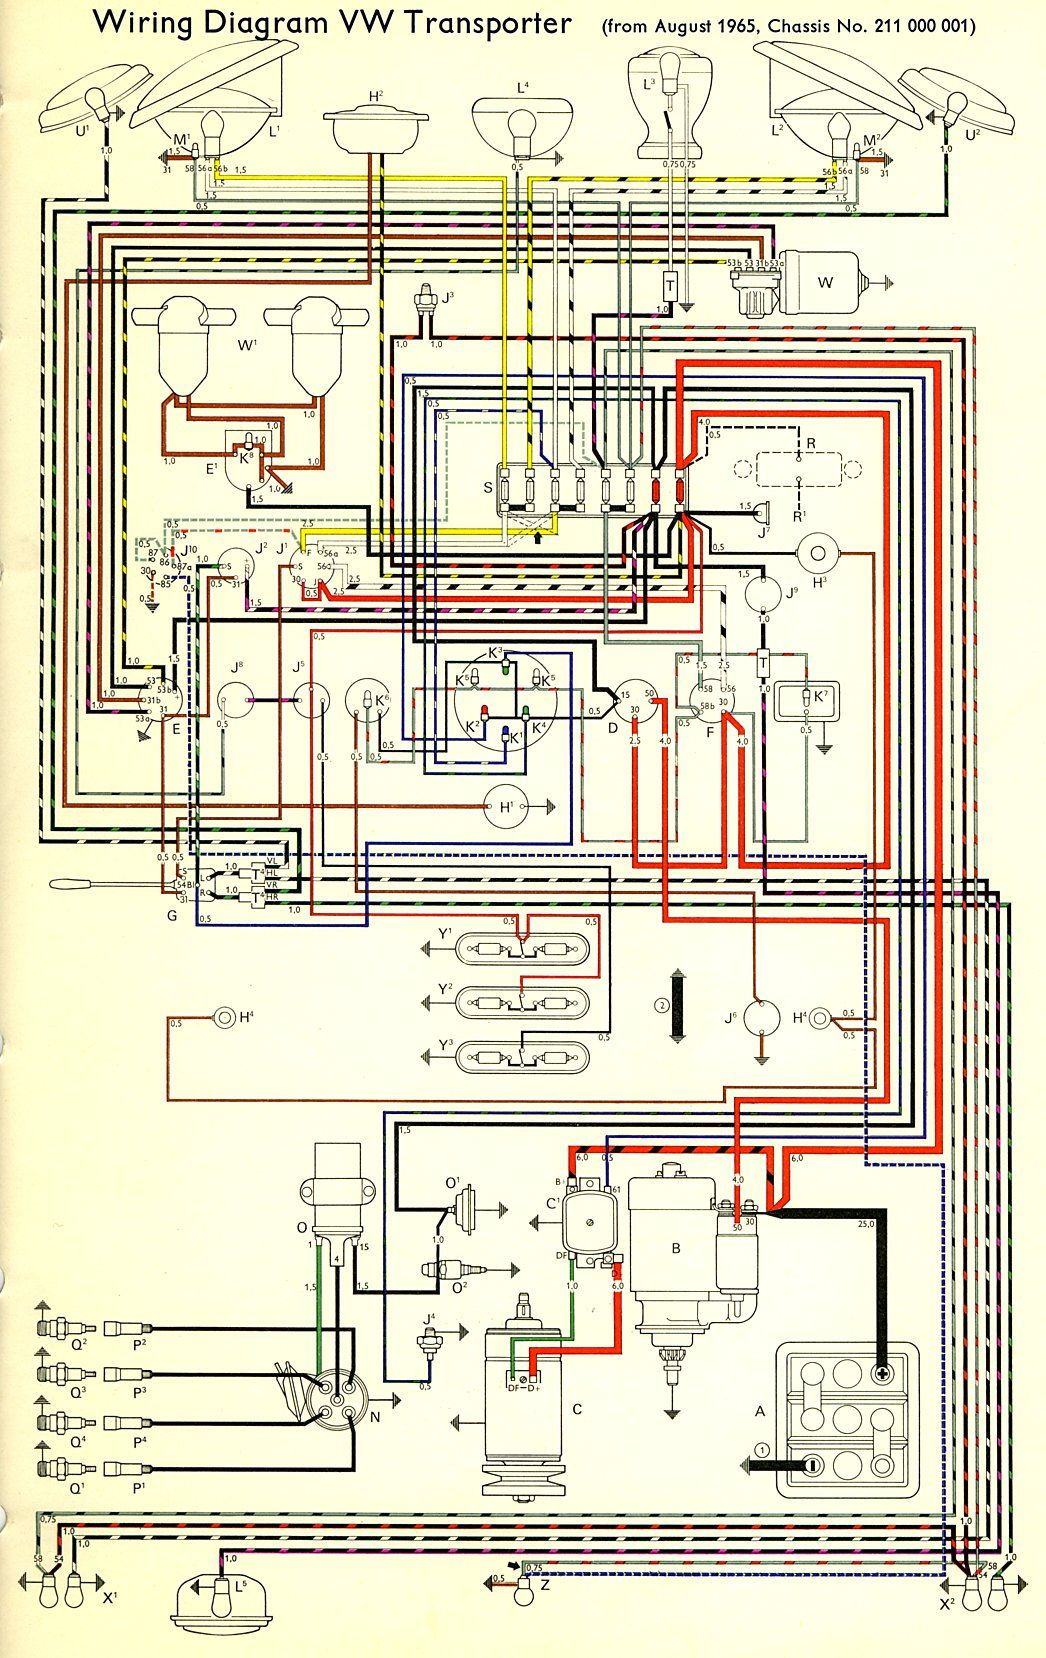 Wiring Diagram Vw Transporter The Samba Bay Pride Pinterest Automobile Electrical Diagrams